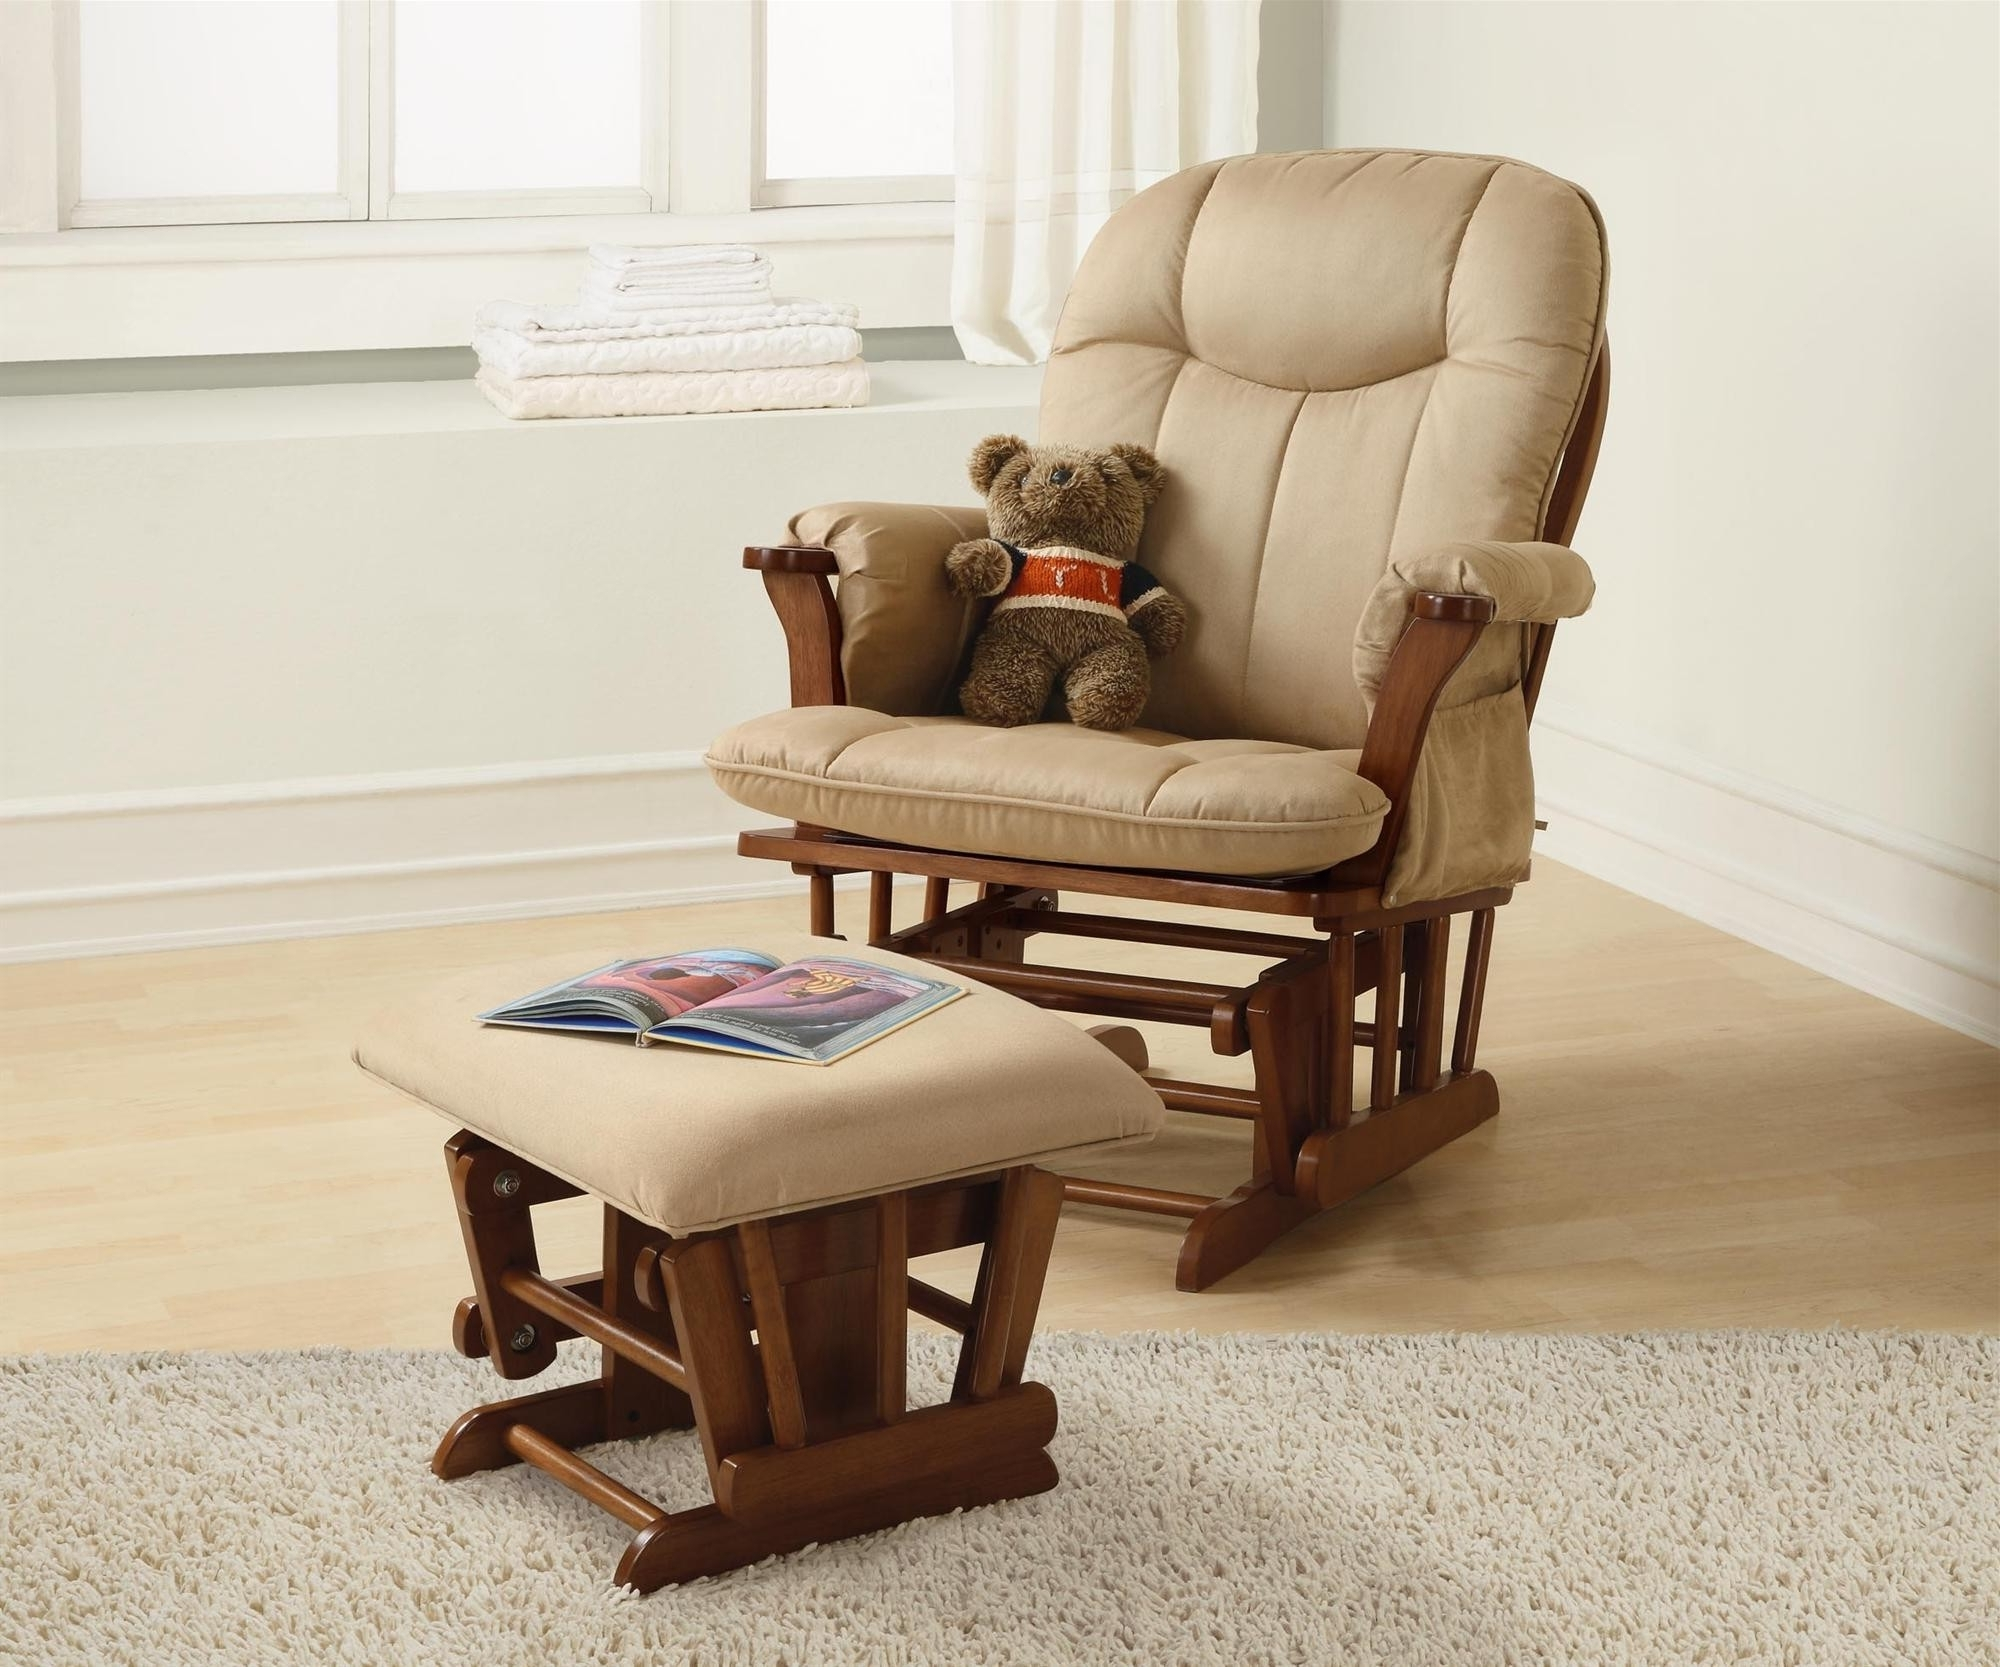 Rocking Chairs For Nursing Pertaining To Most Up To Date Ottomans : Nursery Rocking Chair Walmart New Ottomans Glider Rocker (View 14 of 15)